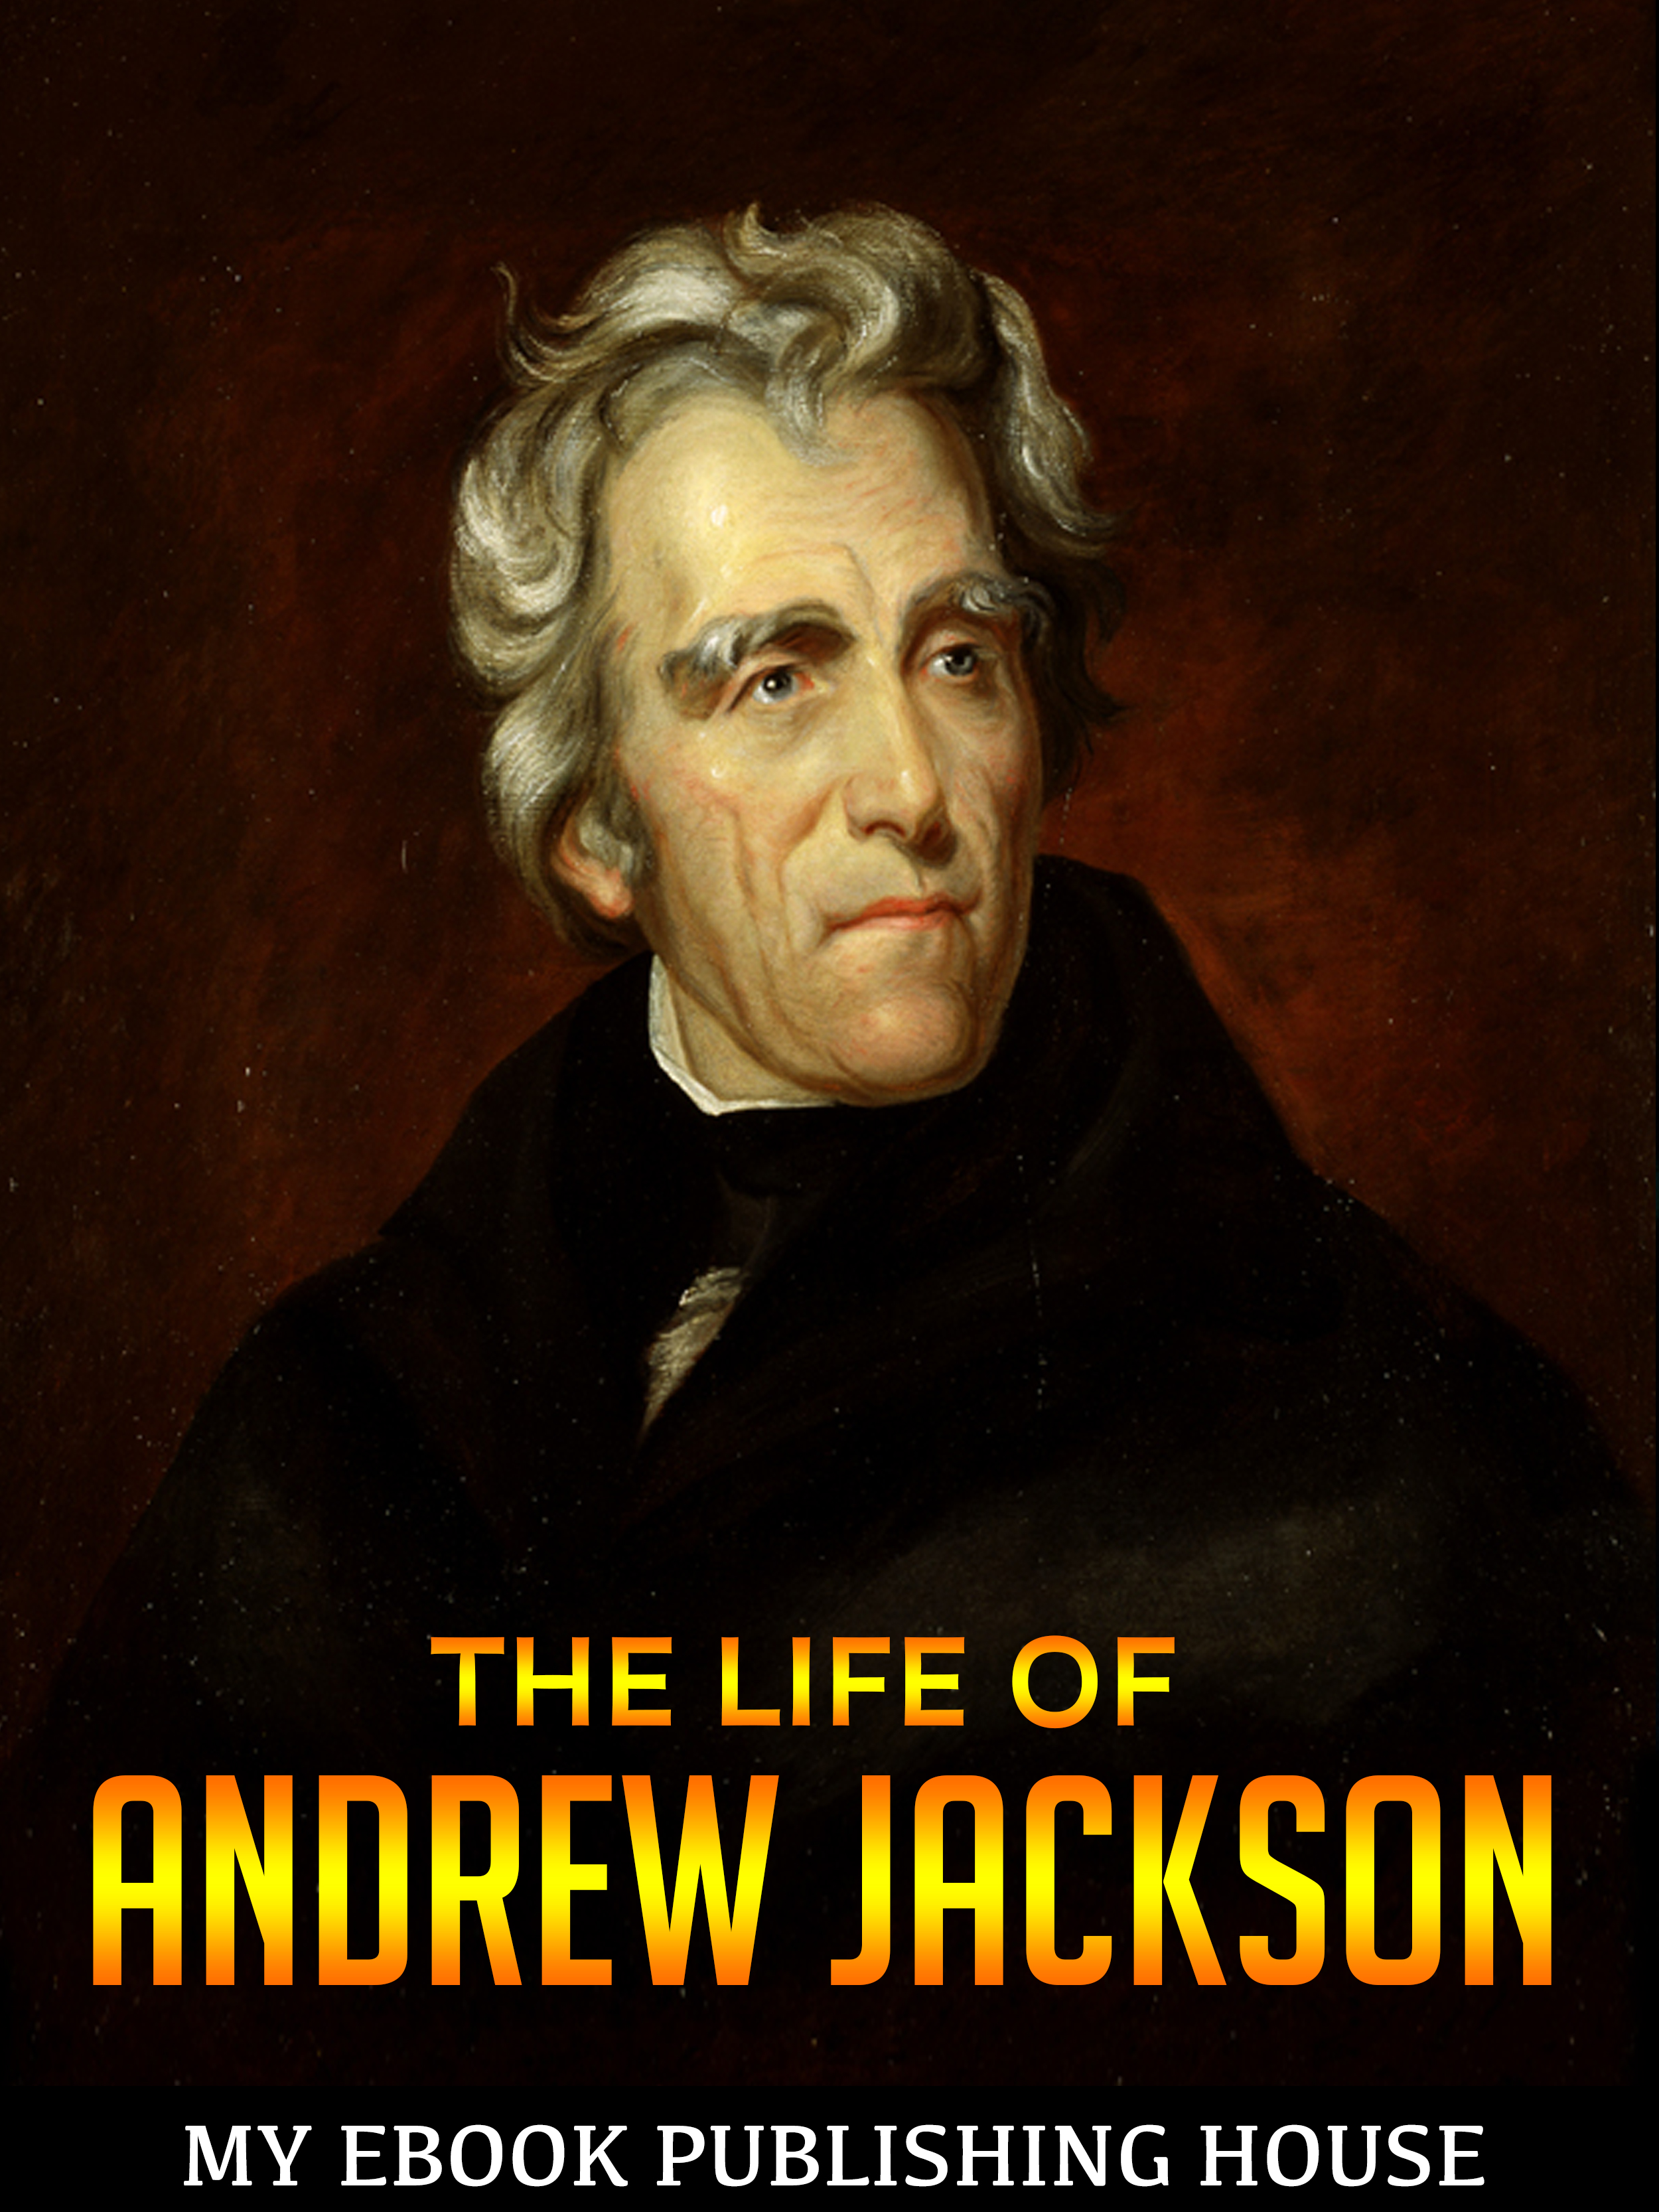 an analysis of the age of jackson a brief biography of andrew jackson 7th president of the united st Sean wilentz has penned an admirable brief biography of andrew jackson this thin volume is part of the american presidents series of books they are brief and accessible to a larger readership.